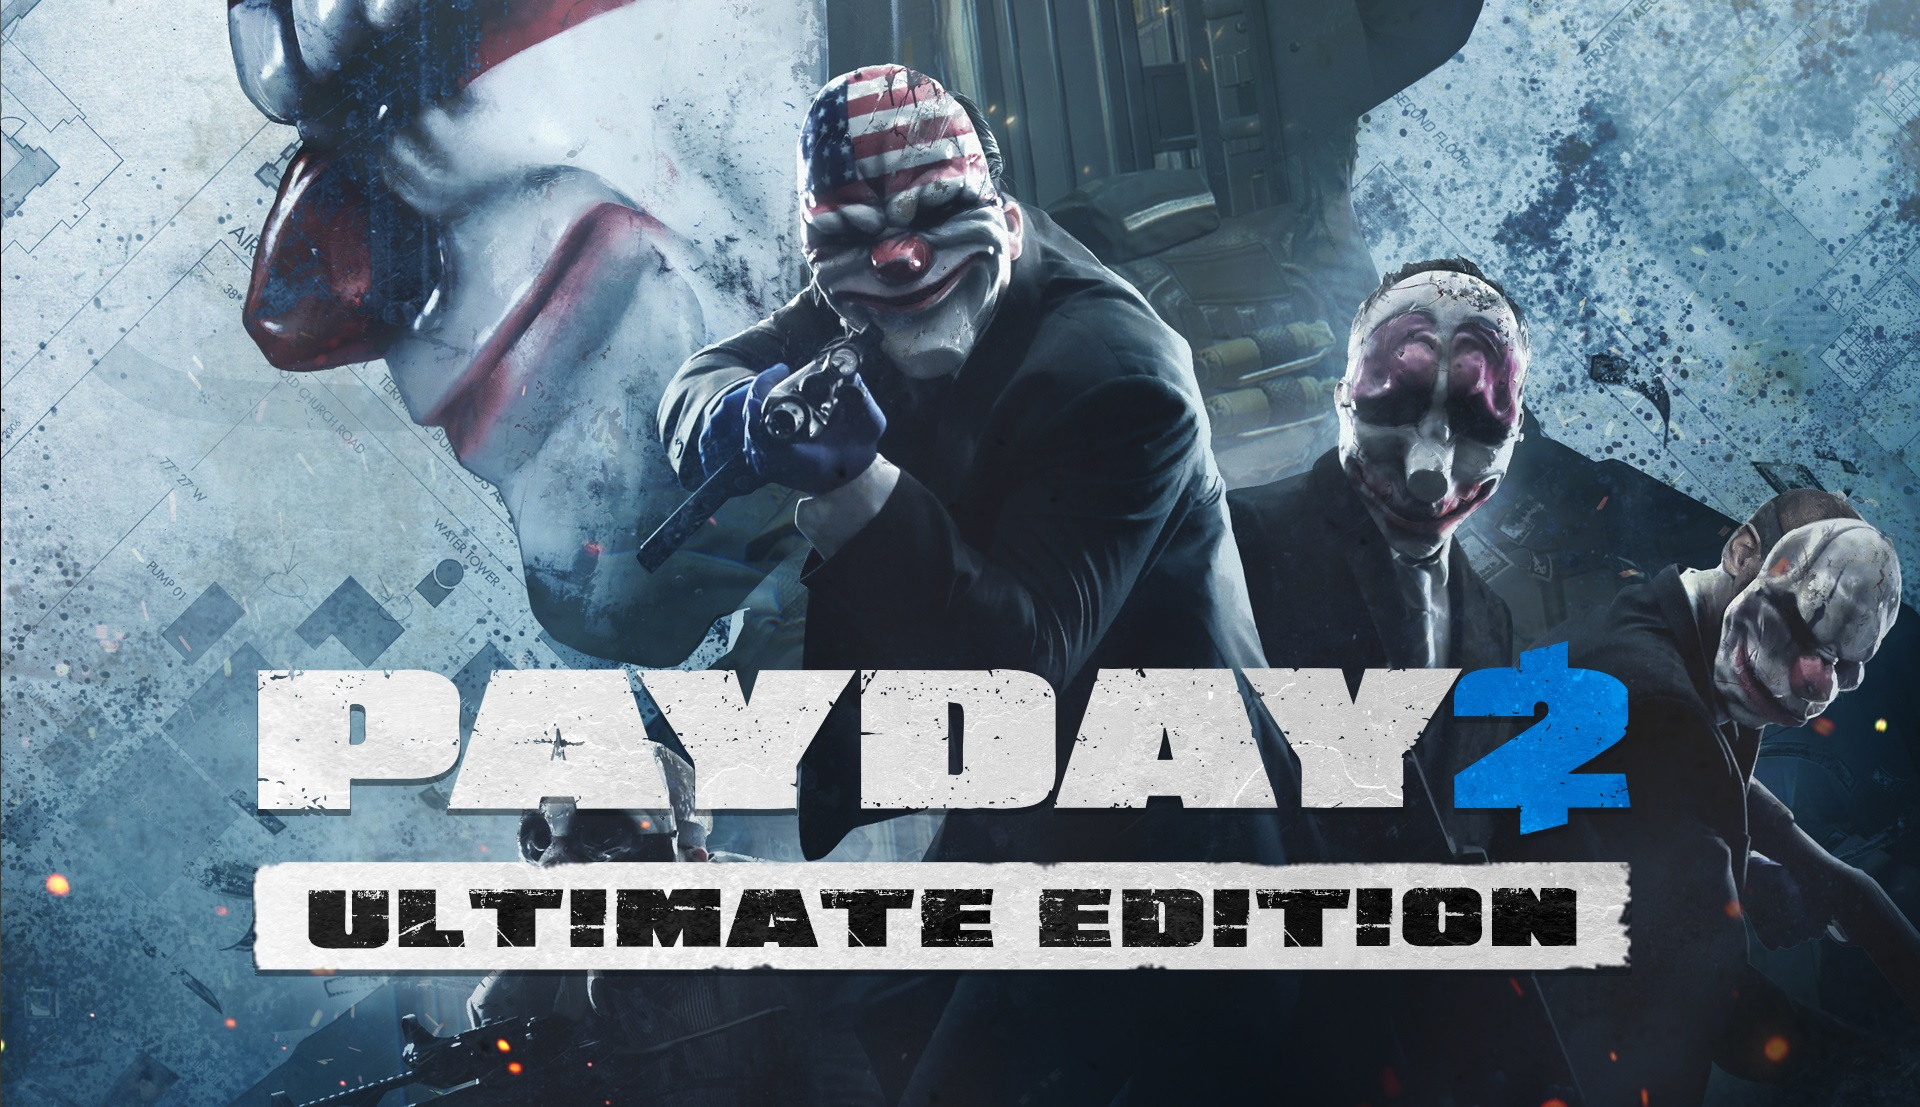 PAYDAY 2 - Ultimate Edition is live! - OVERKILL Software